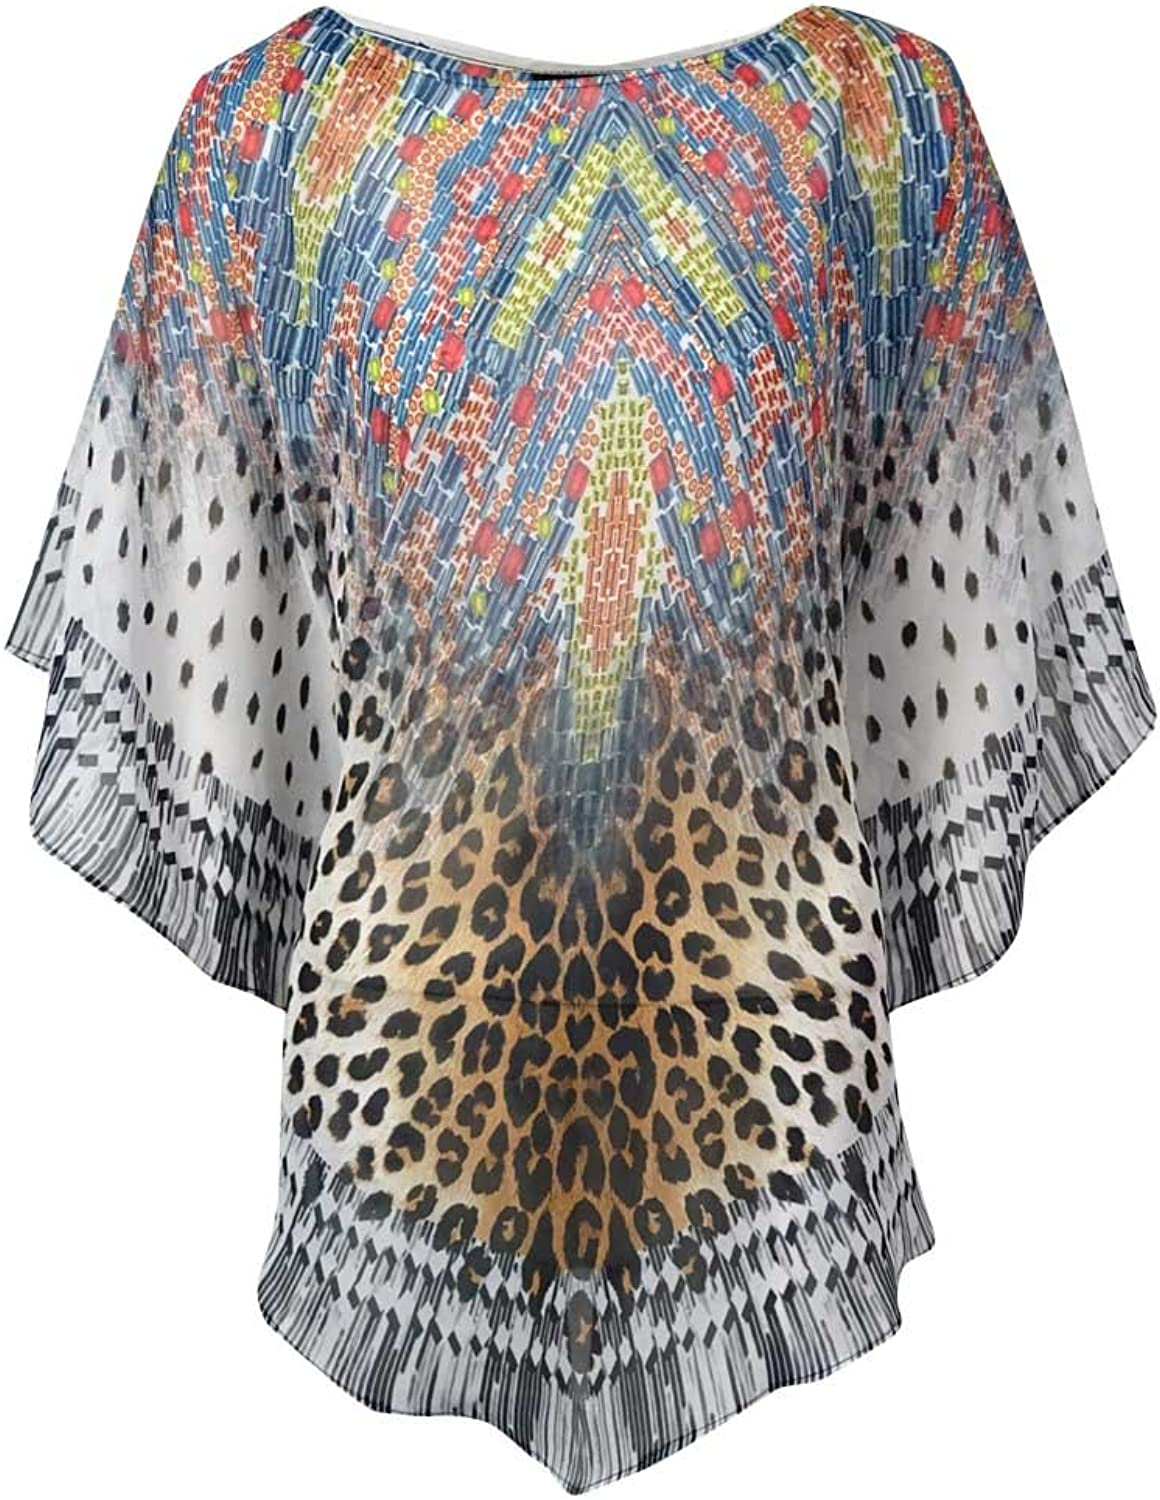 Coco Reef Leopard Print Accented Bathing Suit Cover Up